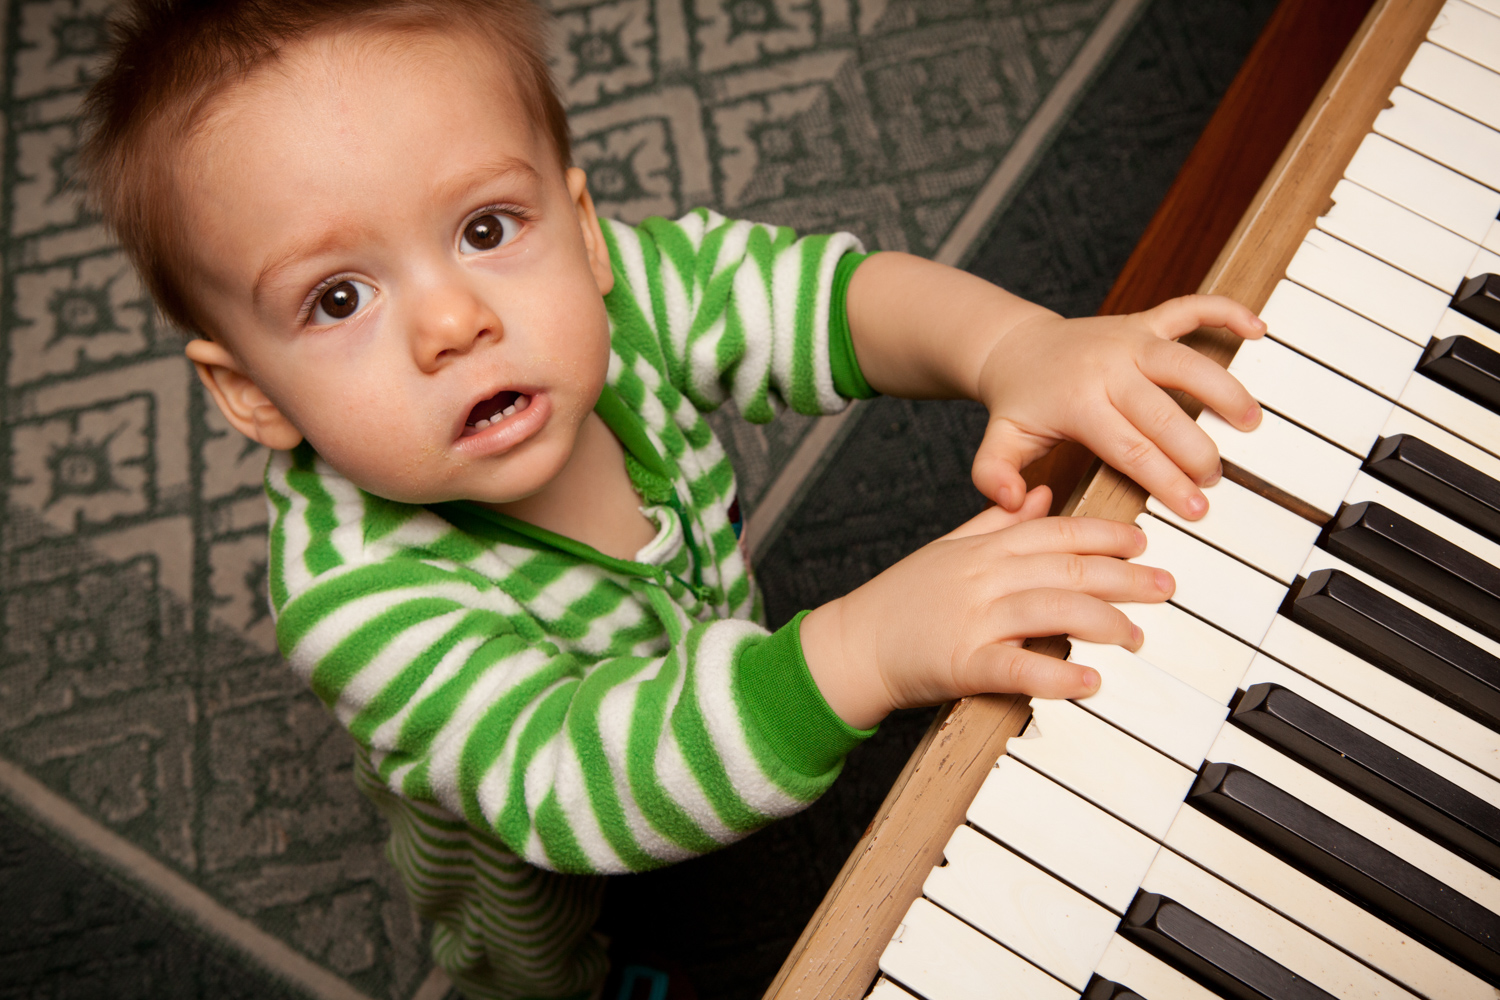 A little boy playing piano